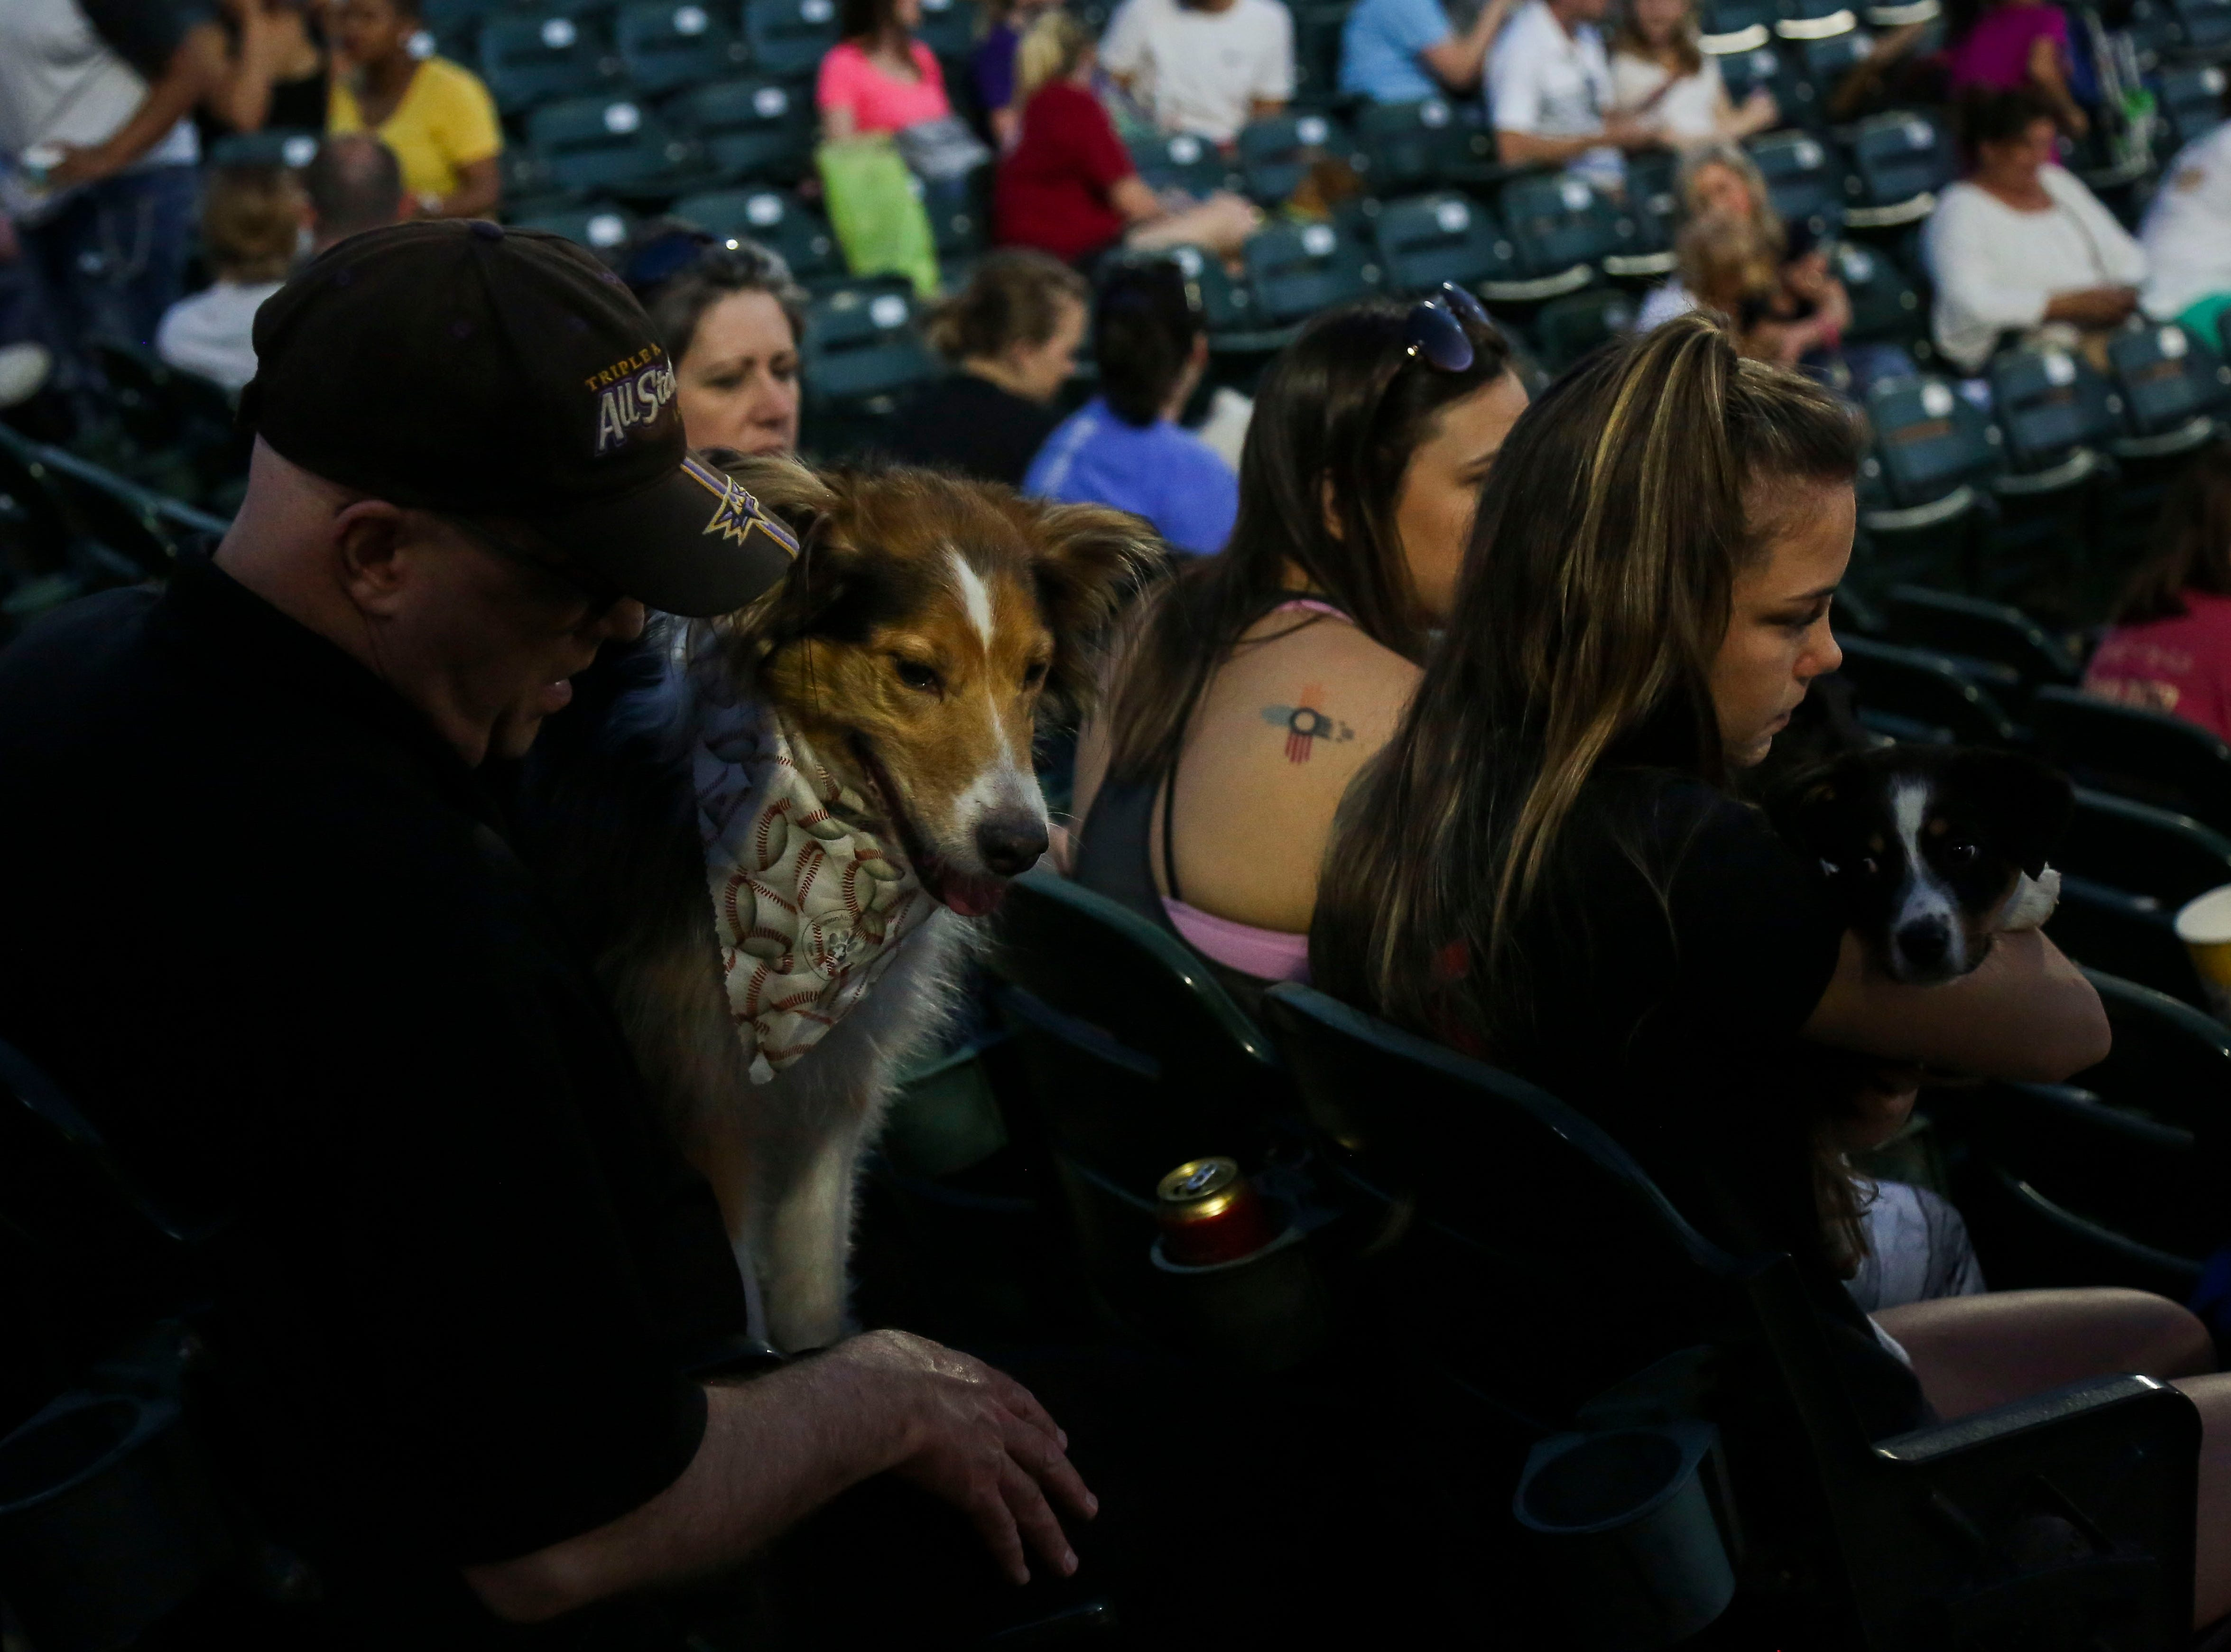 Zelda the Australian Shepard sits with his owner Tony Stevens during the Louisville Bats v. Syracuse Mets game during Dog Day Nights at Louisville Slugger Field in downtown Louisville, Ky. on Tuesday, May 7, 2019.